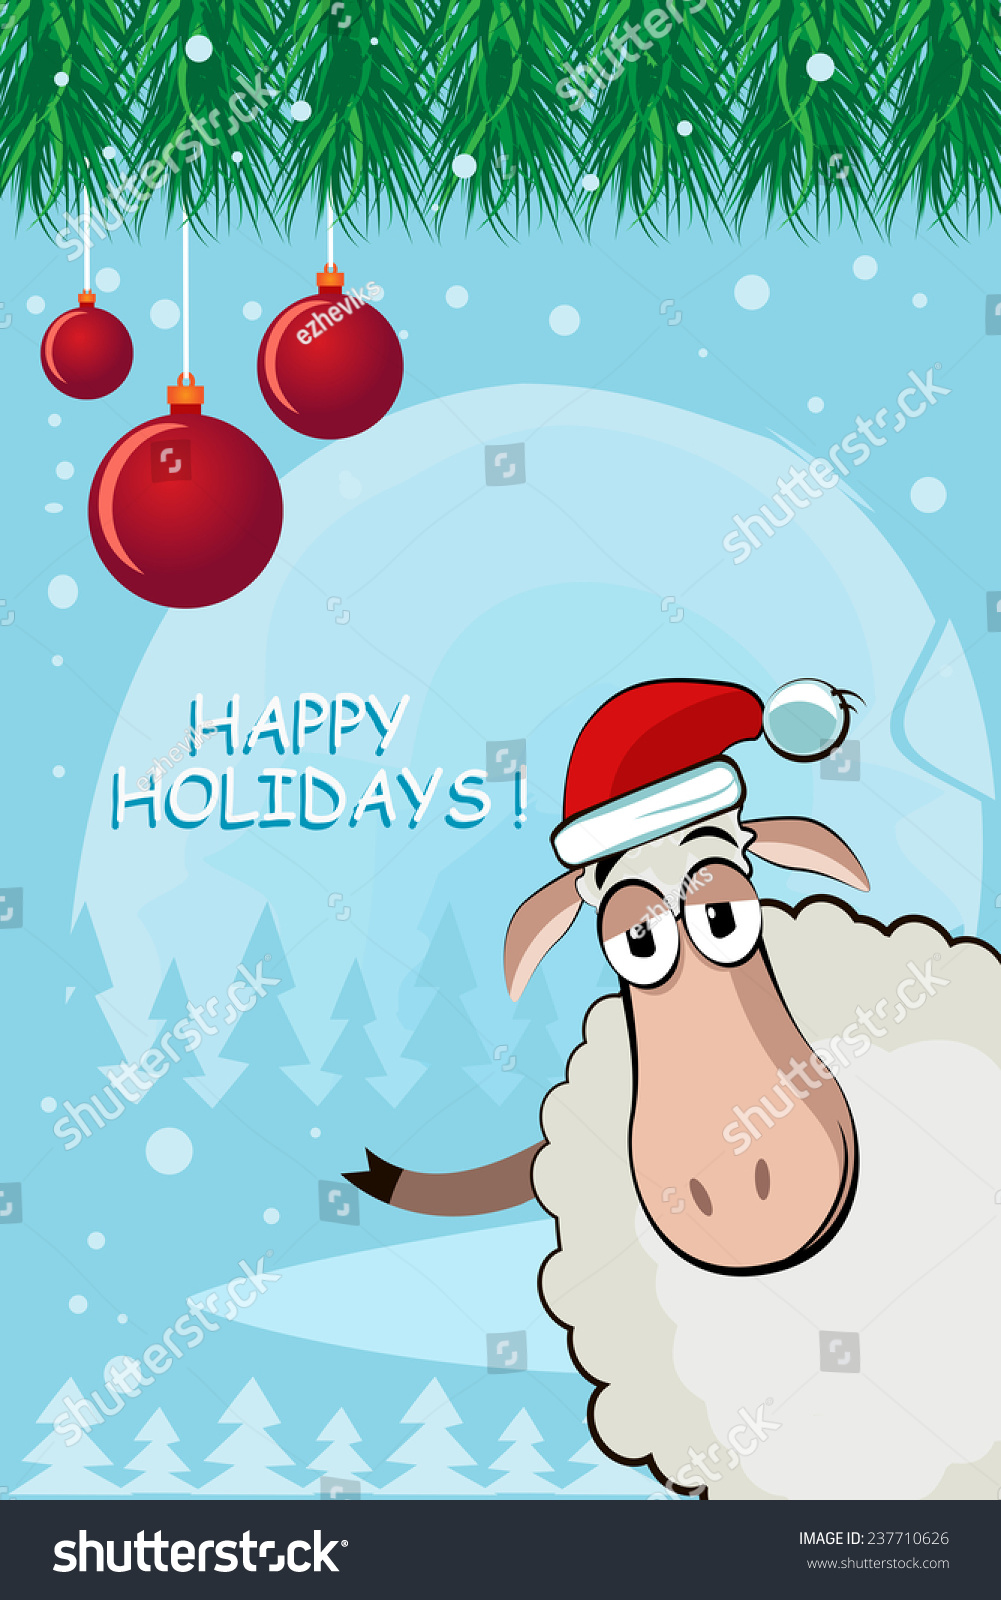 Greeting christmas card funny sheep symbol stock illustration greeting christmas card with funny sheep a symbol of 2015 kristyandbryce Image collections